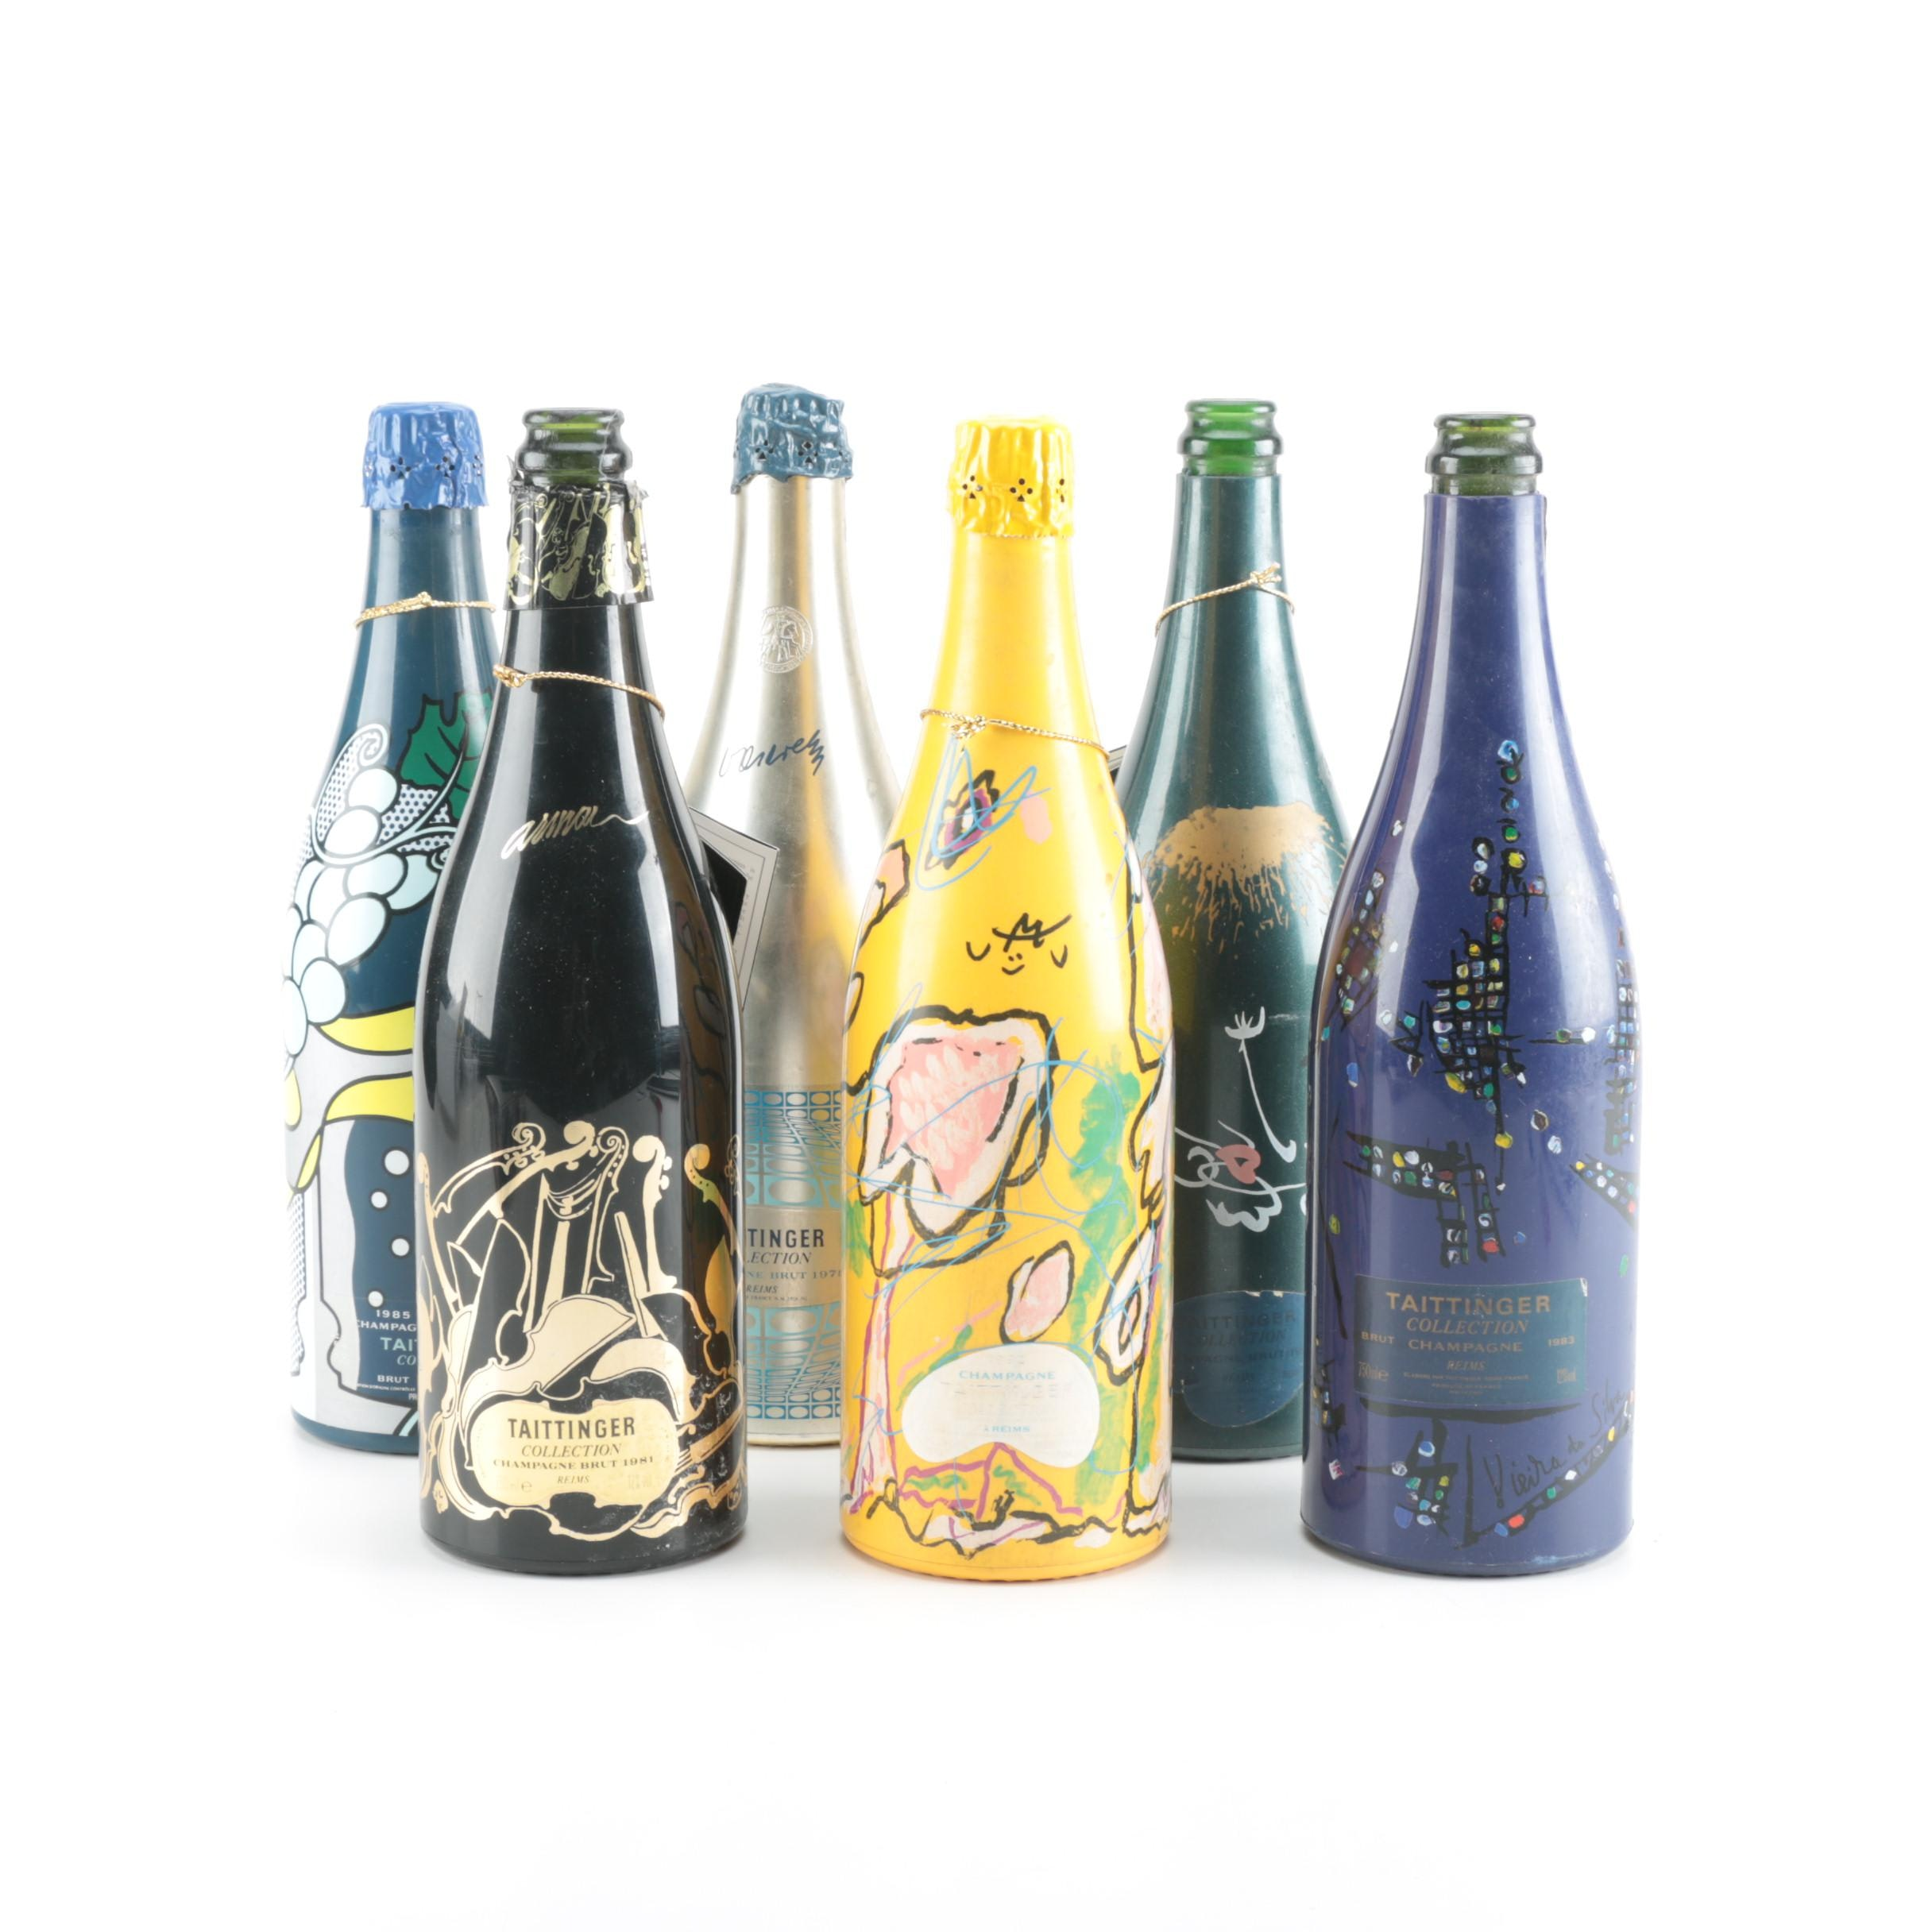 Bottles From the Taittinger Collection Series